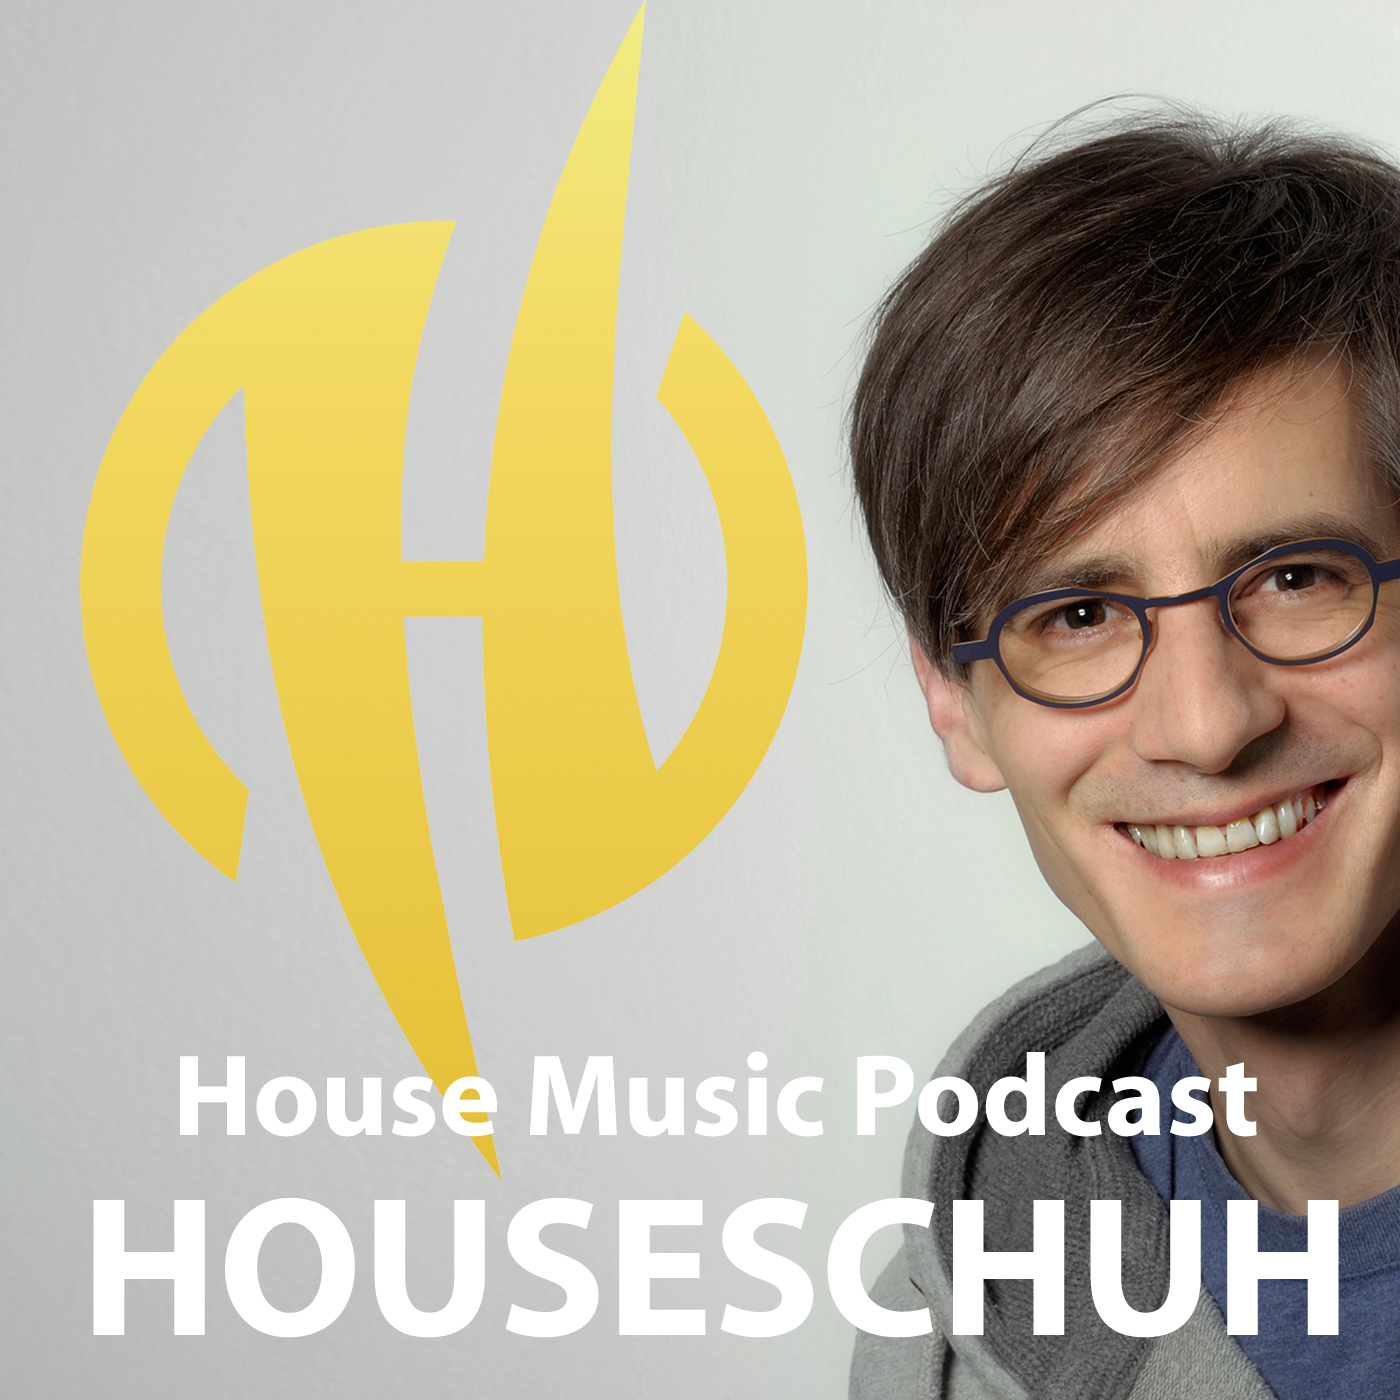 Houseschuh house music podcast podcast for House music podcast